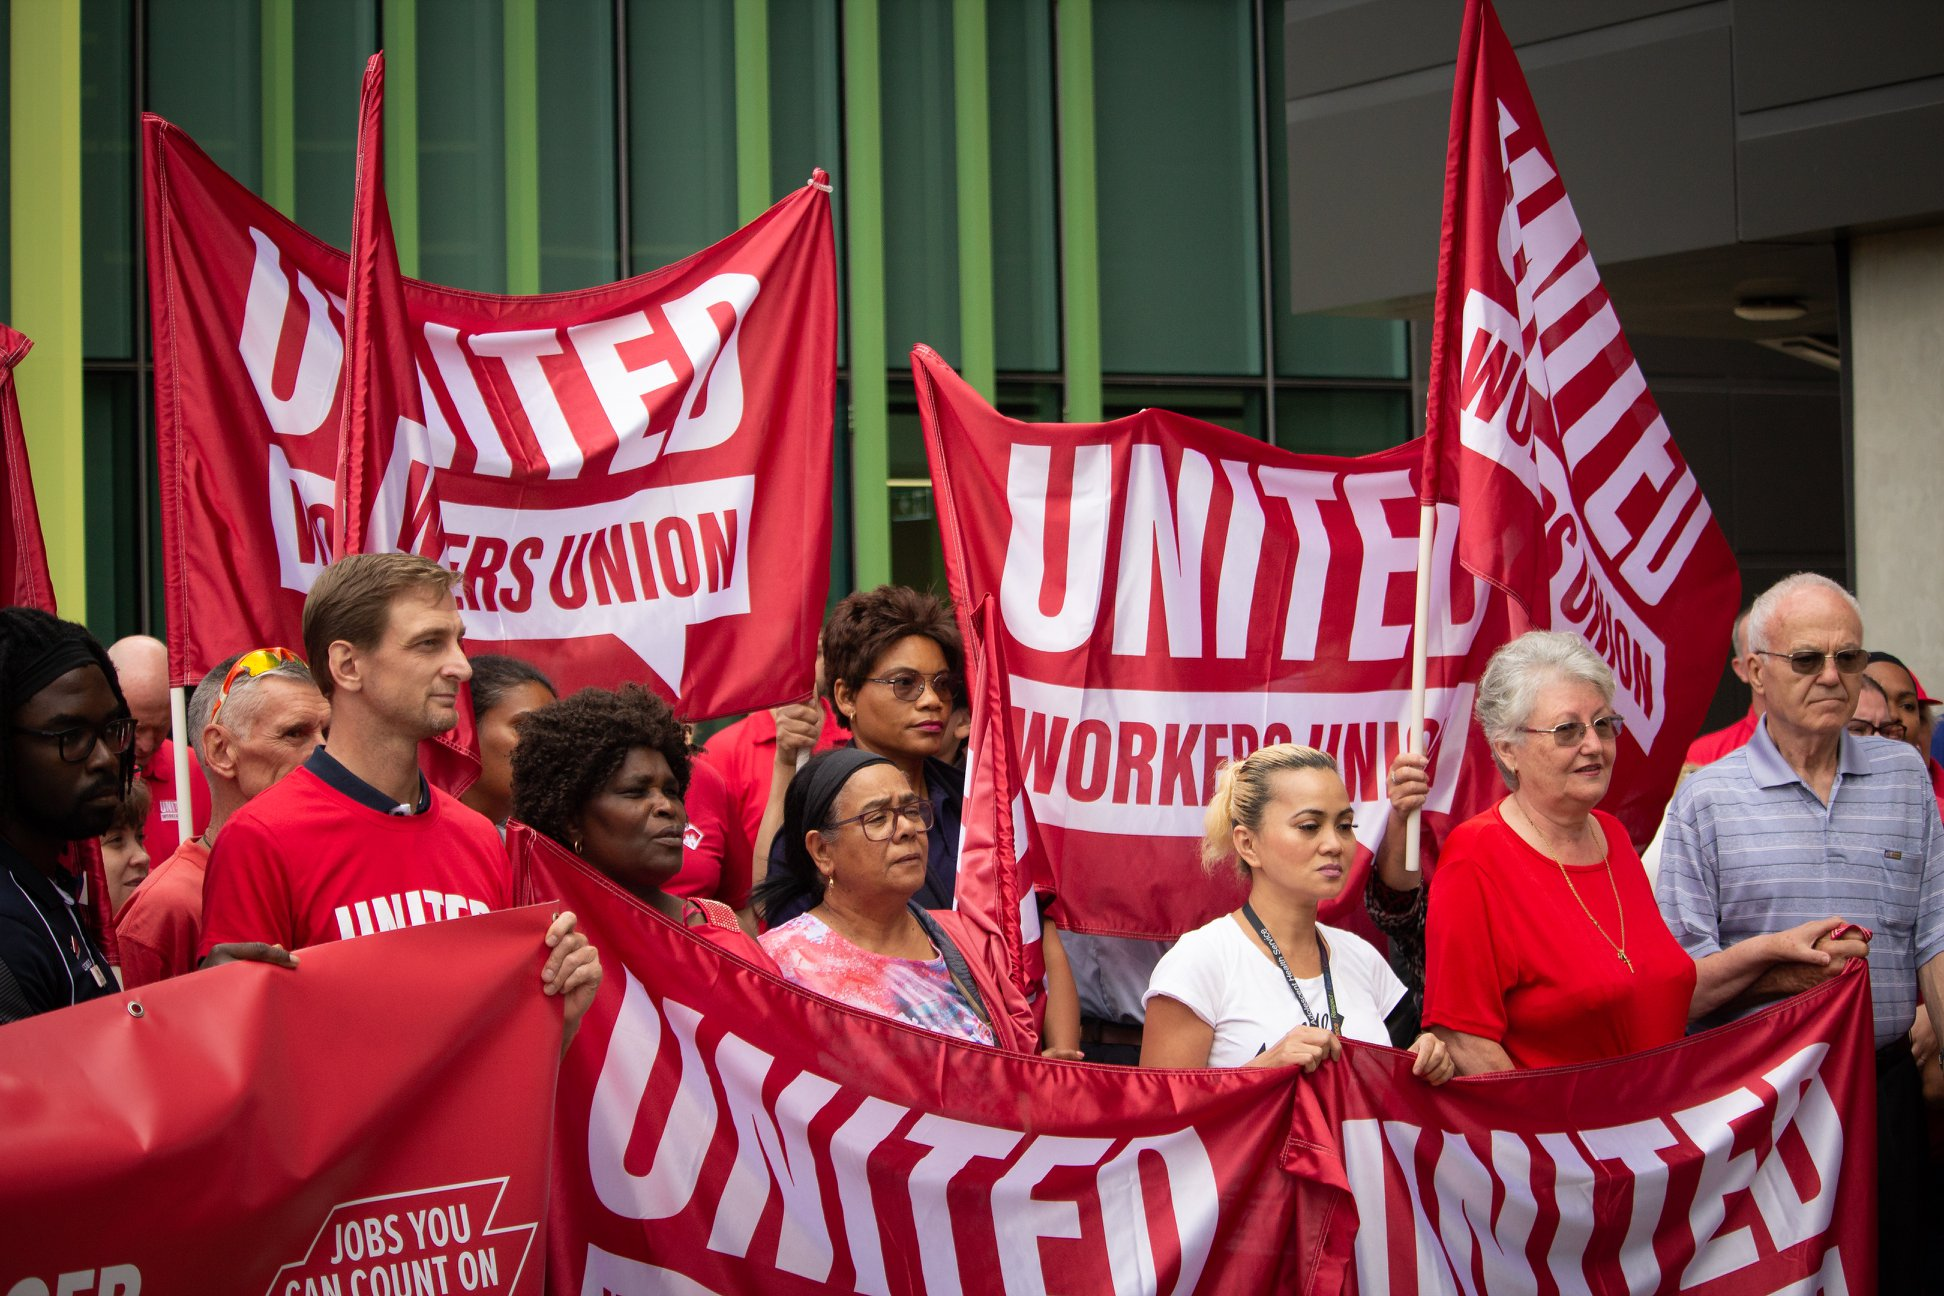 United Workers Union plan a step in right direction